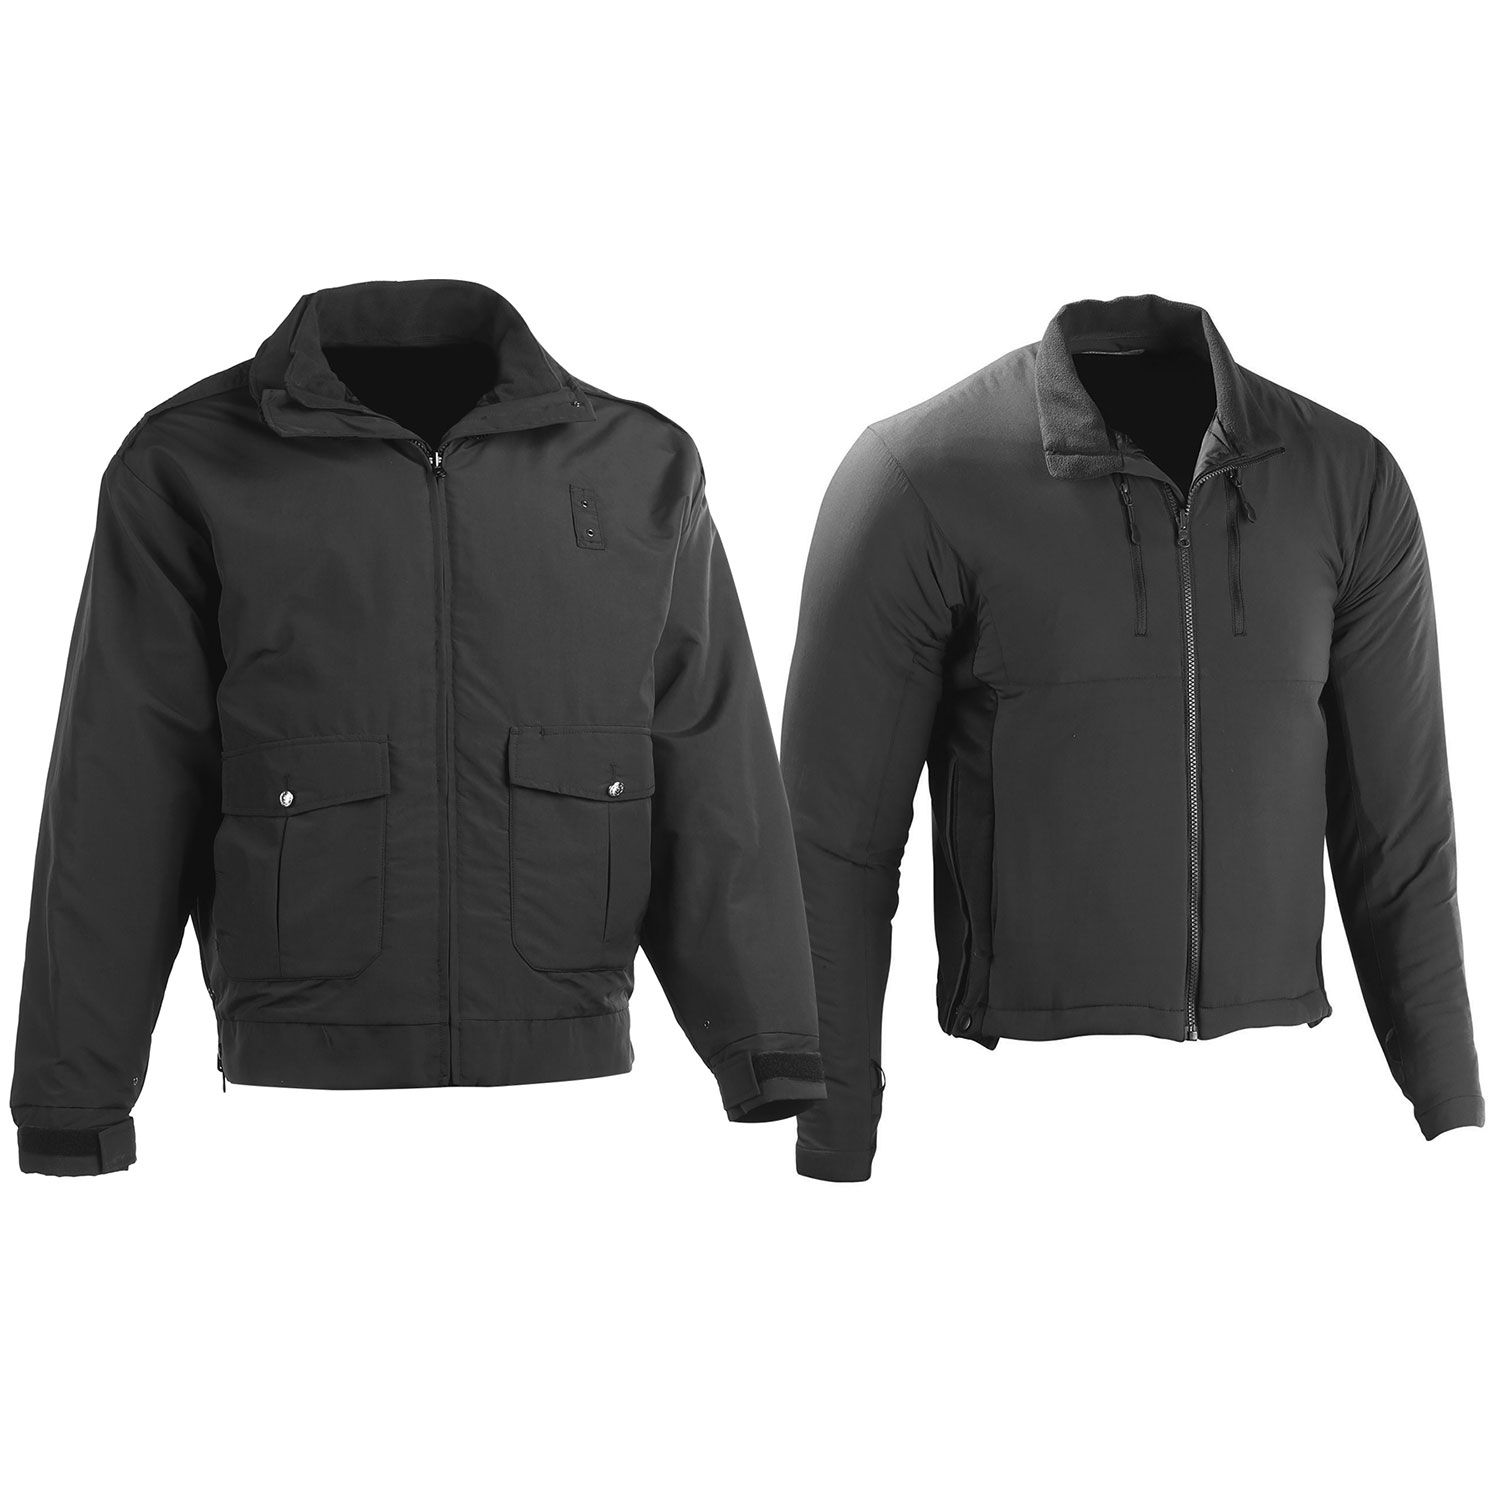 Flying Cross Endurance ANSI 2Reversible Jacket System